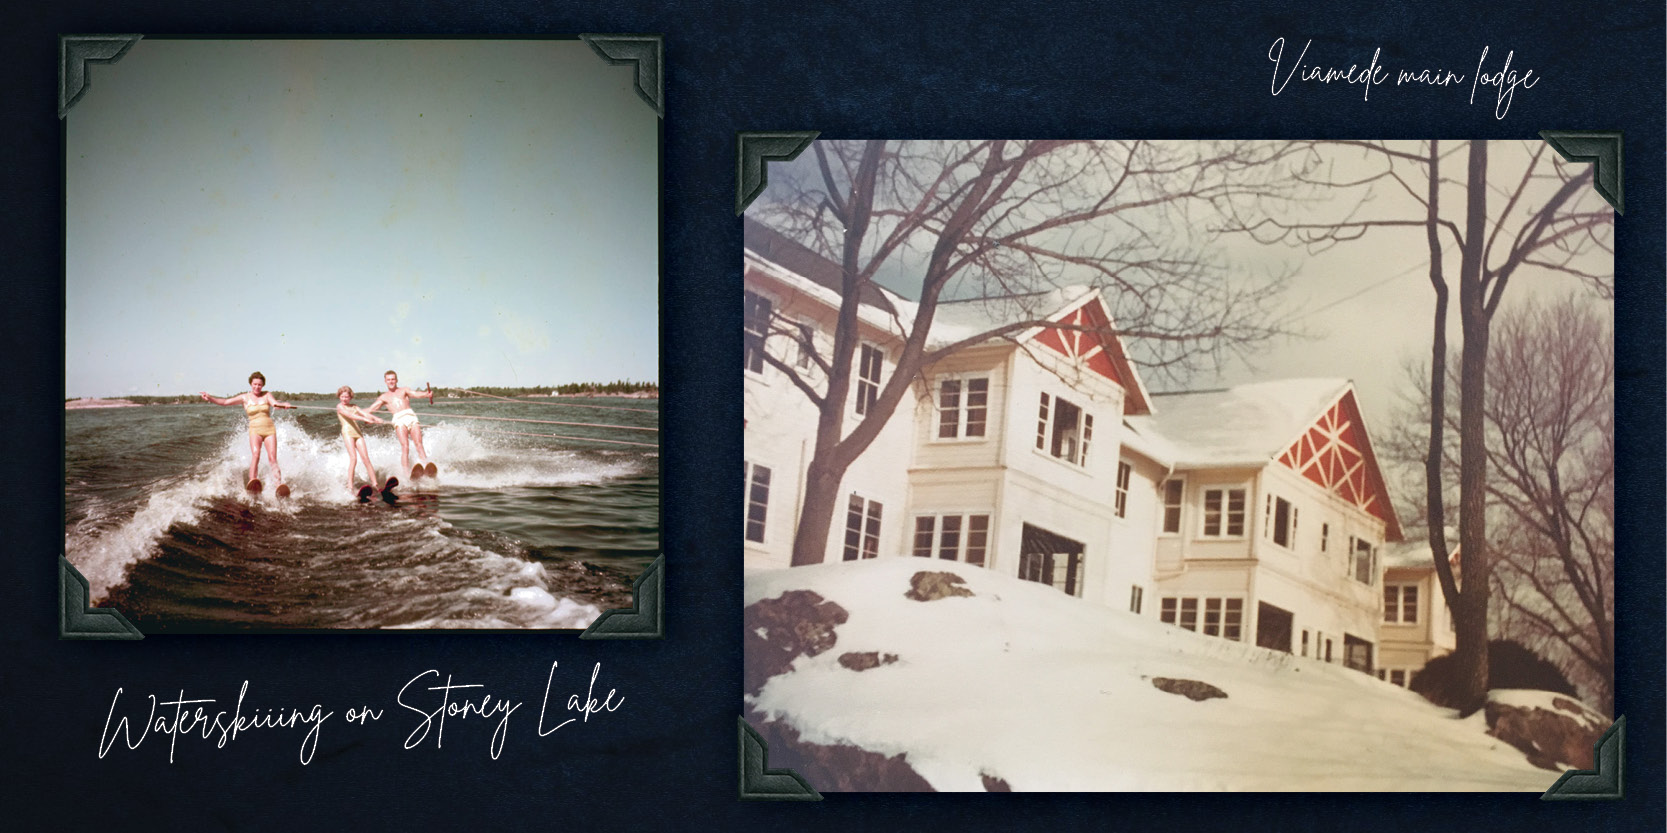 Old throwback photos of Stoney Lake and Viamede Resort; discussing the nostalgia and charm of the Stoney Lake area